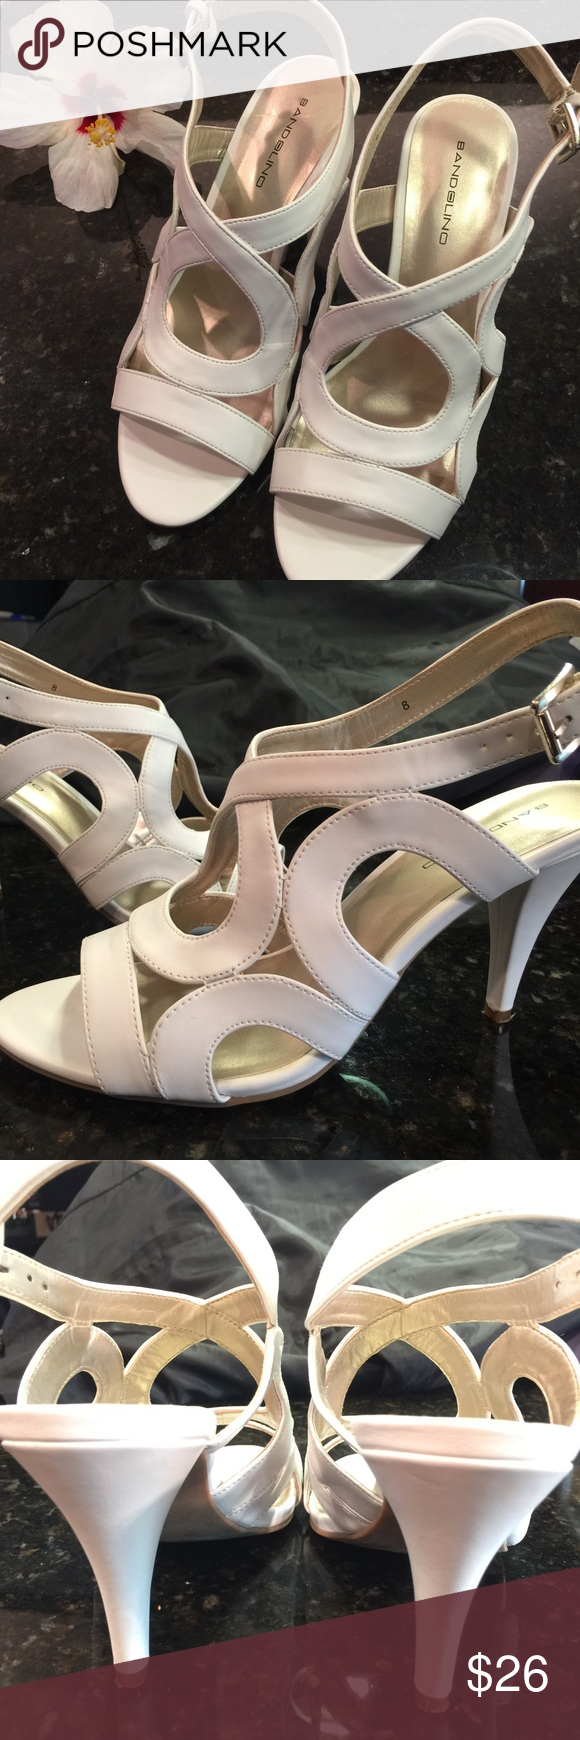 """Bandolino ivory sandals Leather sandals in a pretty ivory color perfect for summer. Very comfortable 4"""" heel. Excellent condition. Bandolino Shoes Sandals"""